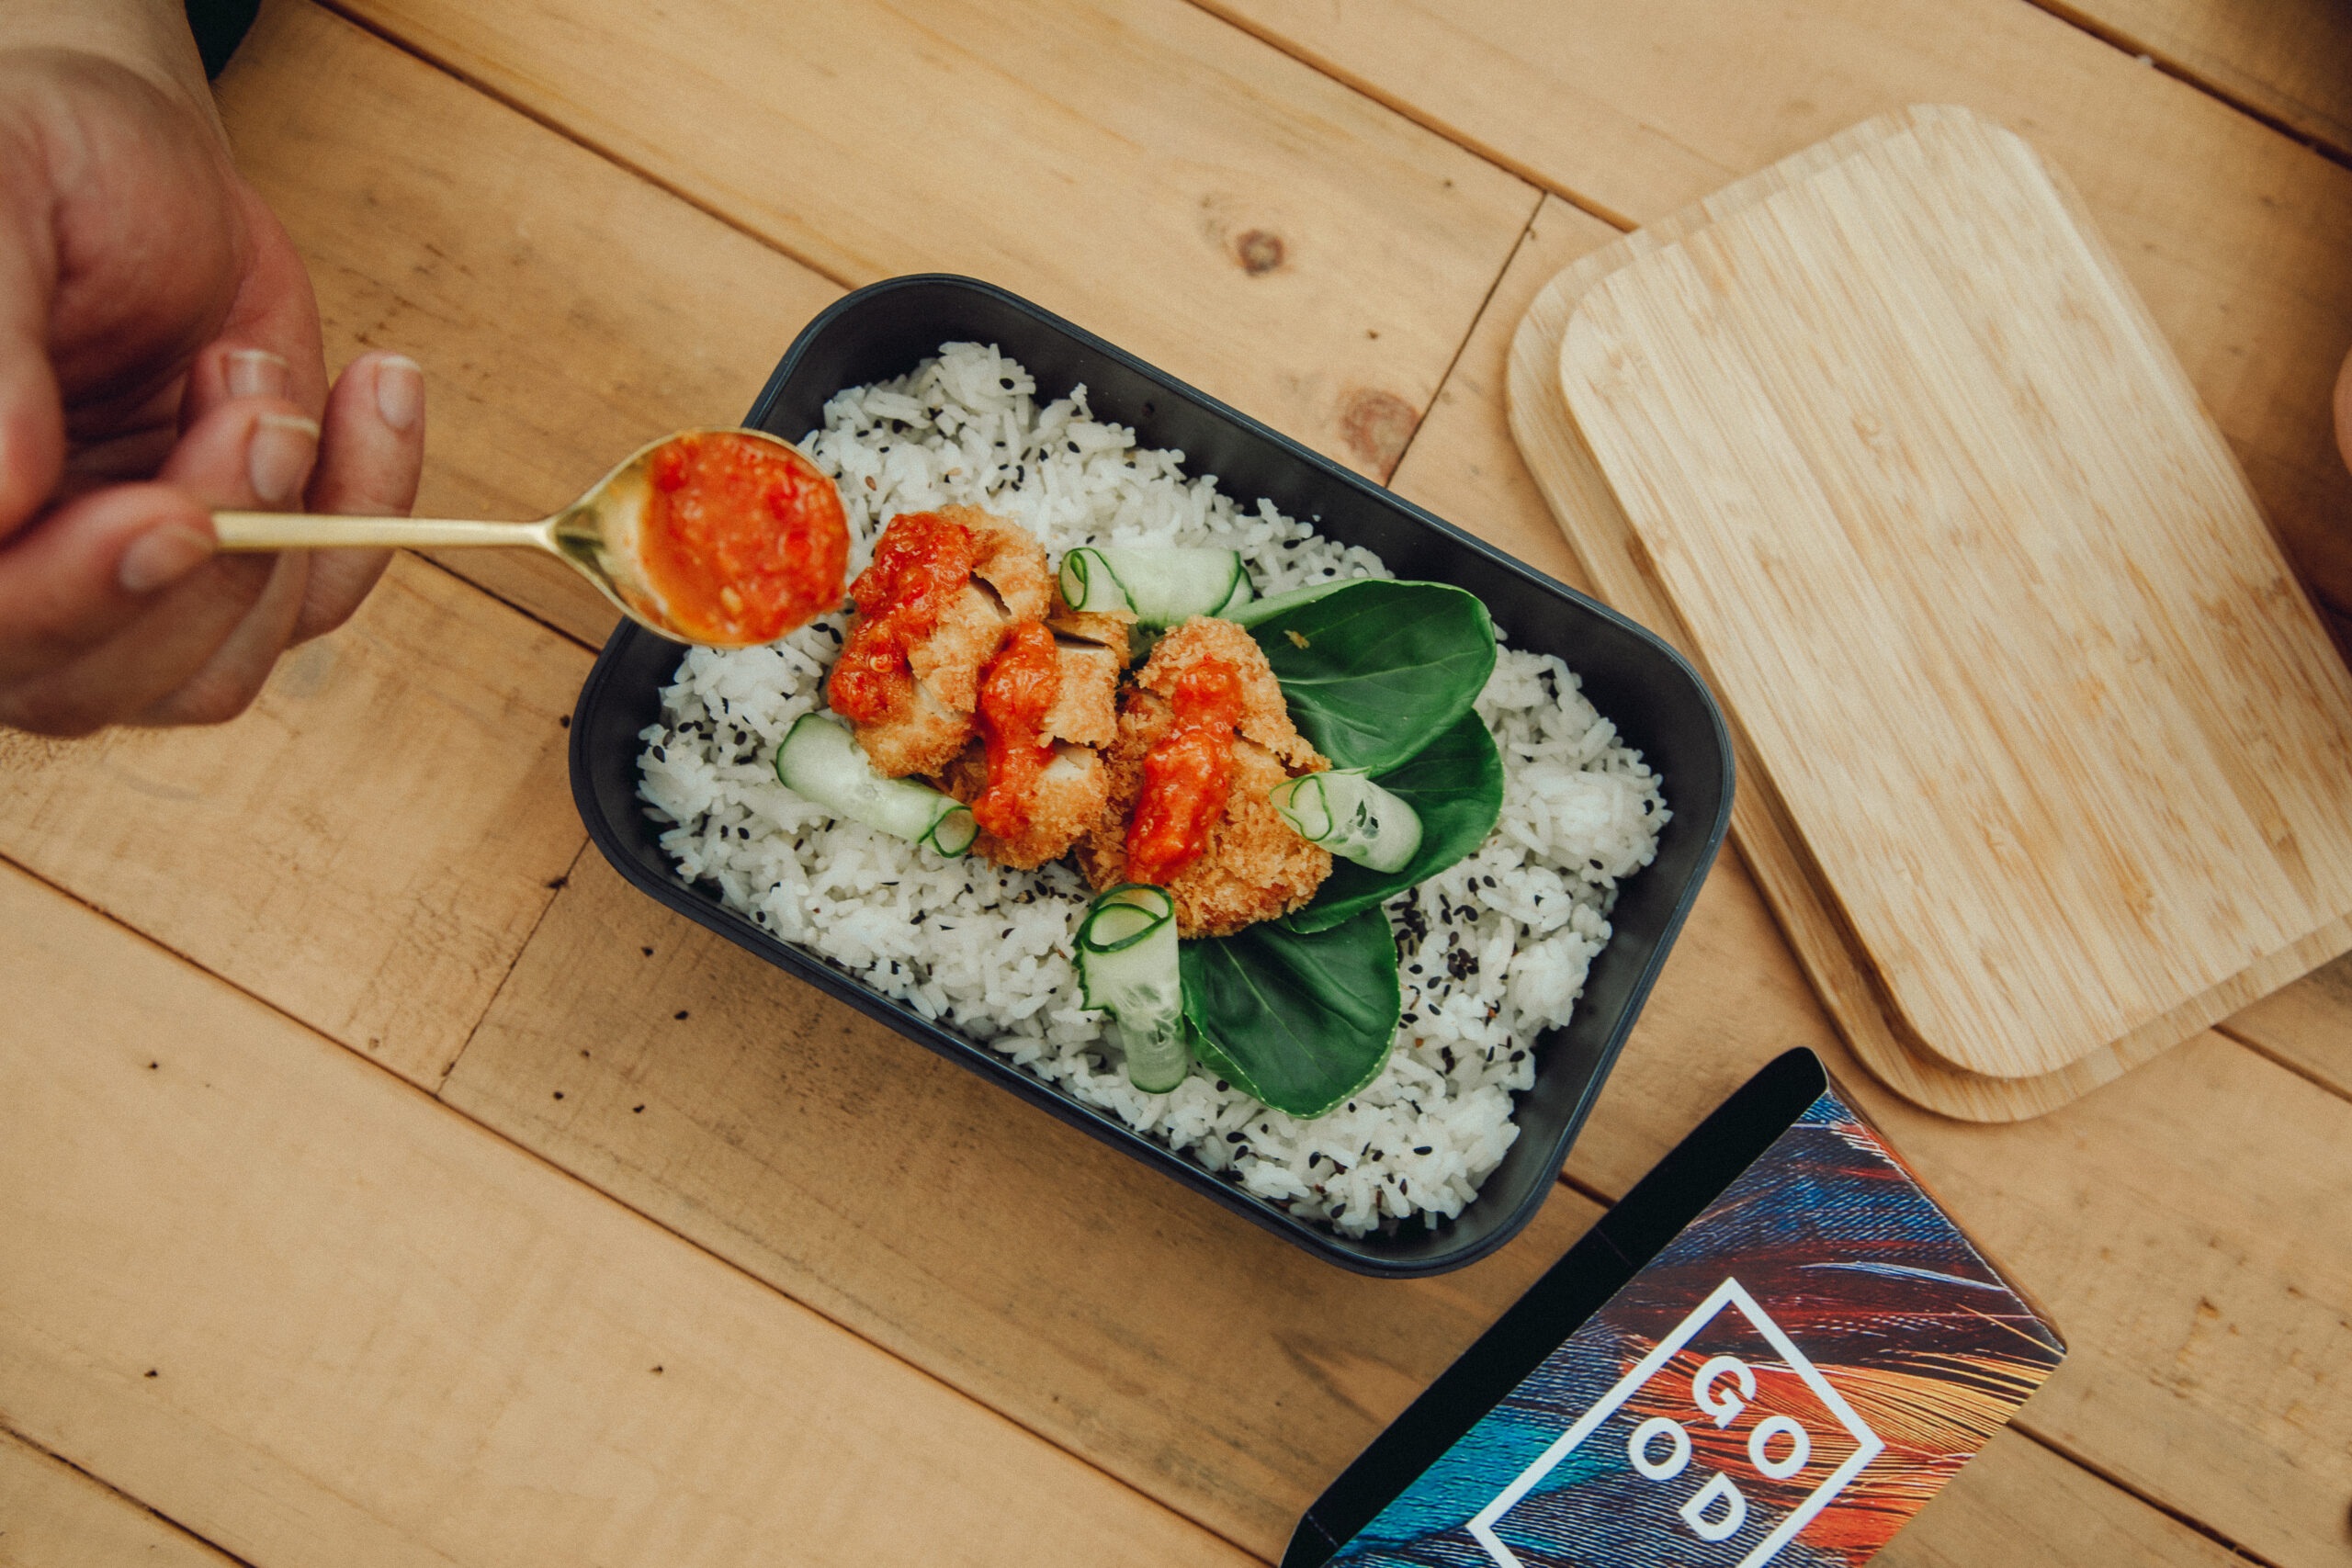 Eat just cultivated chicken foodpanda delivery launch plating v13